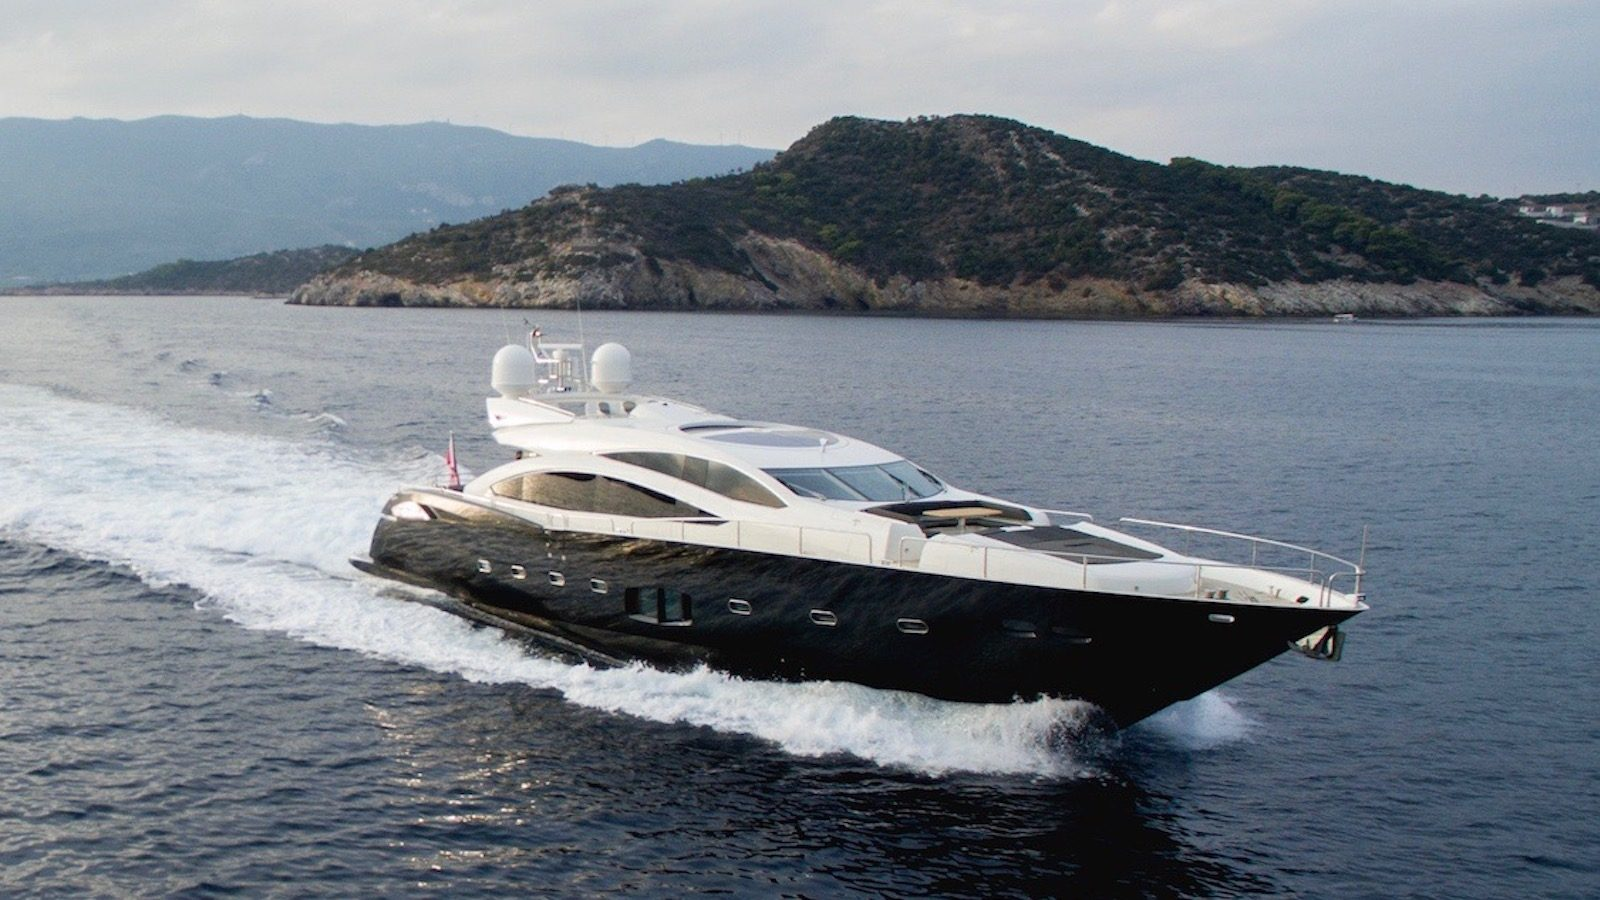 BLADE 6 Yacht for Sale - IYC